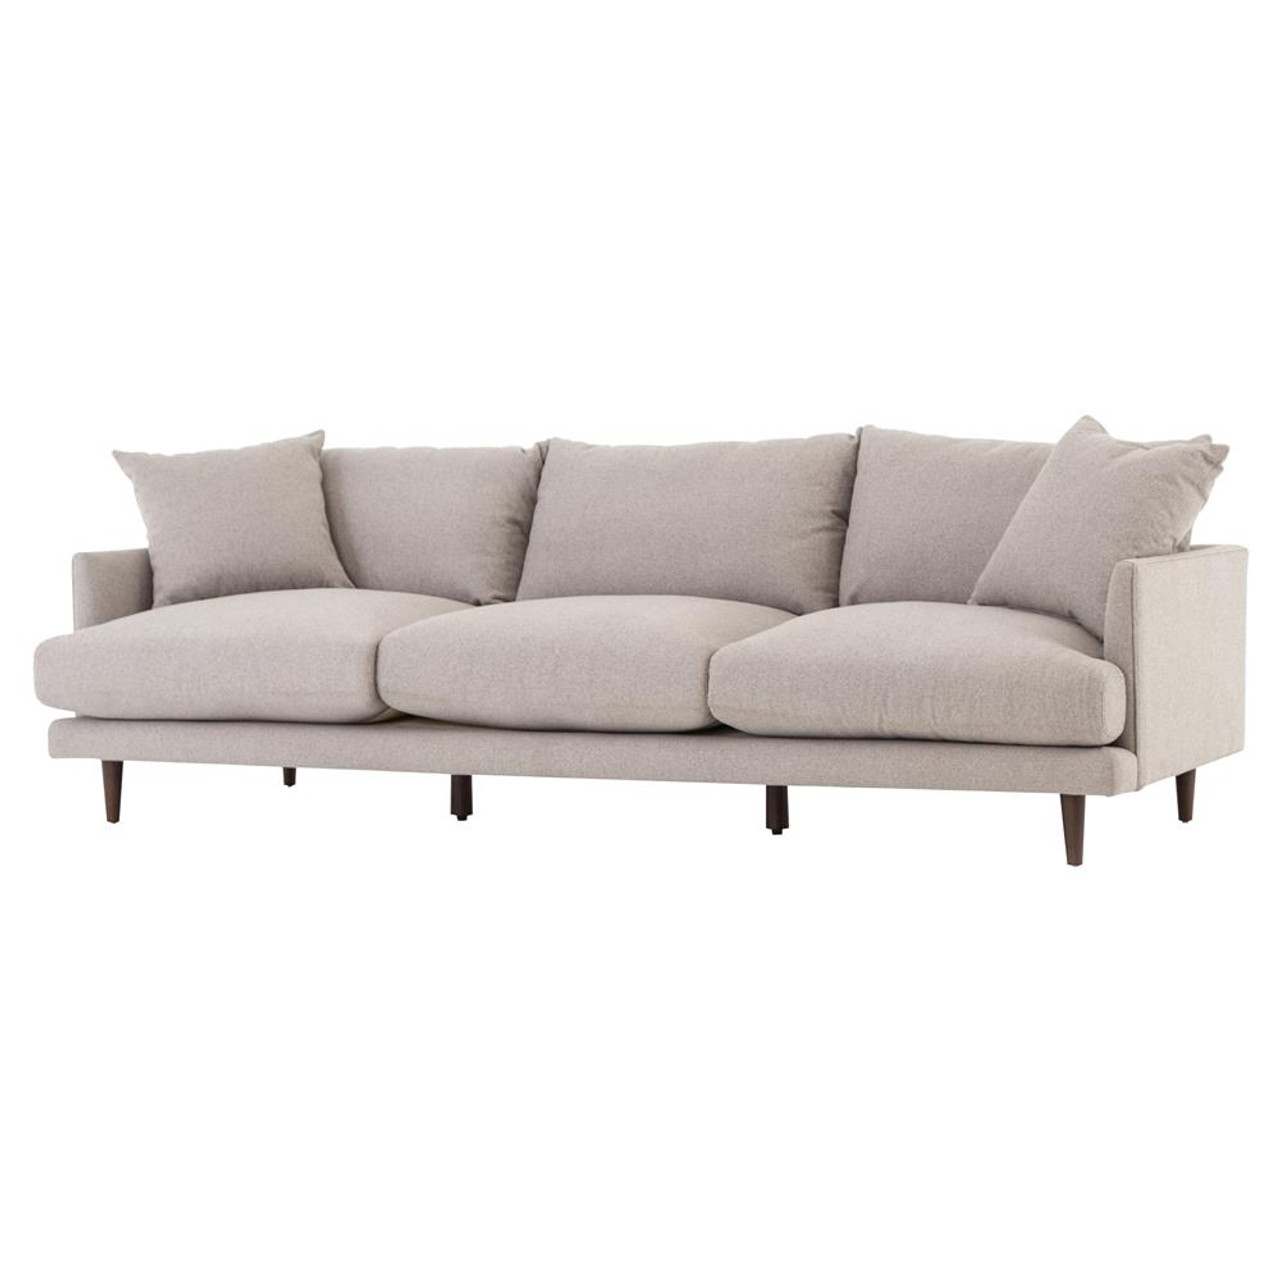 Asta Modern Scandinavian Beige Cushion Back Sofa 98\